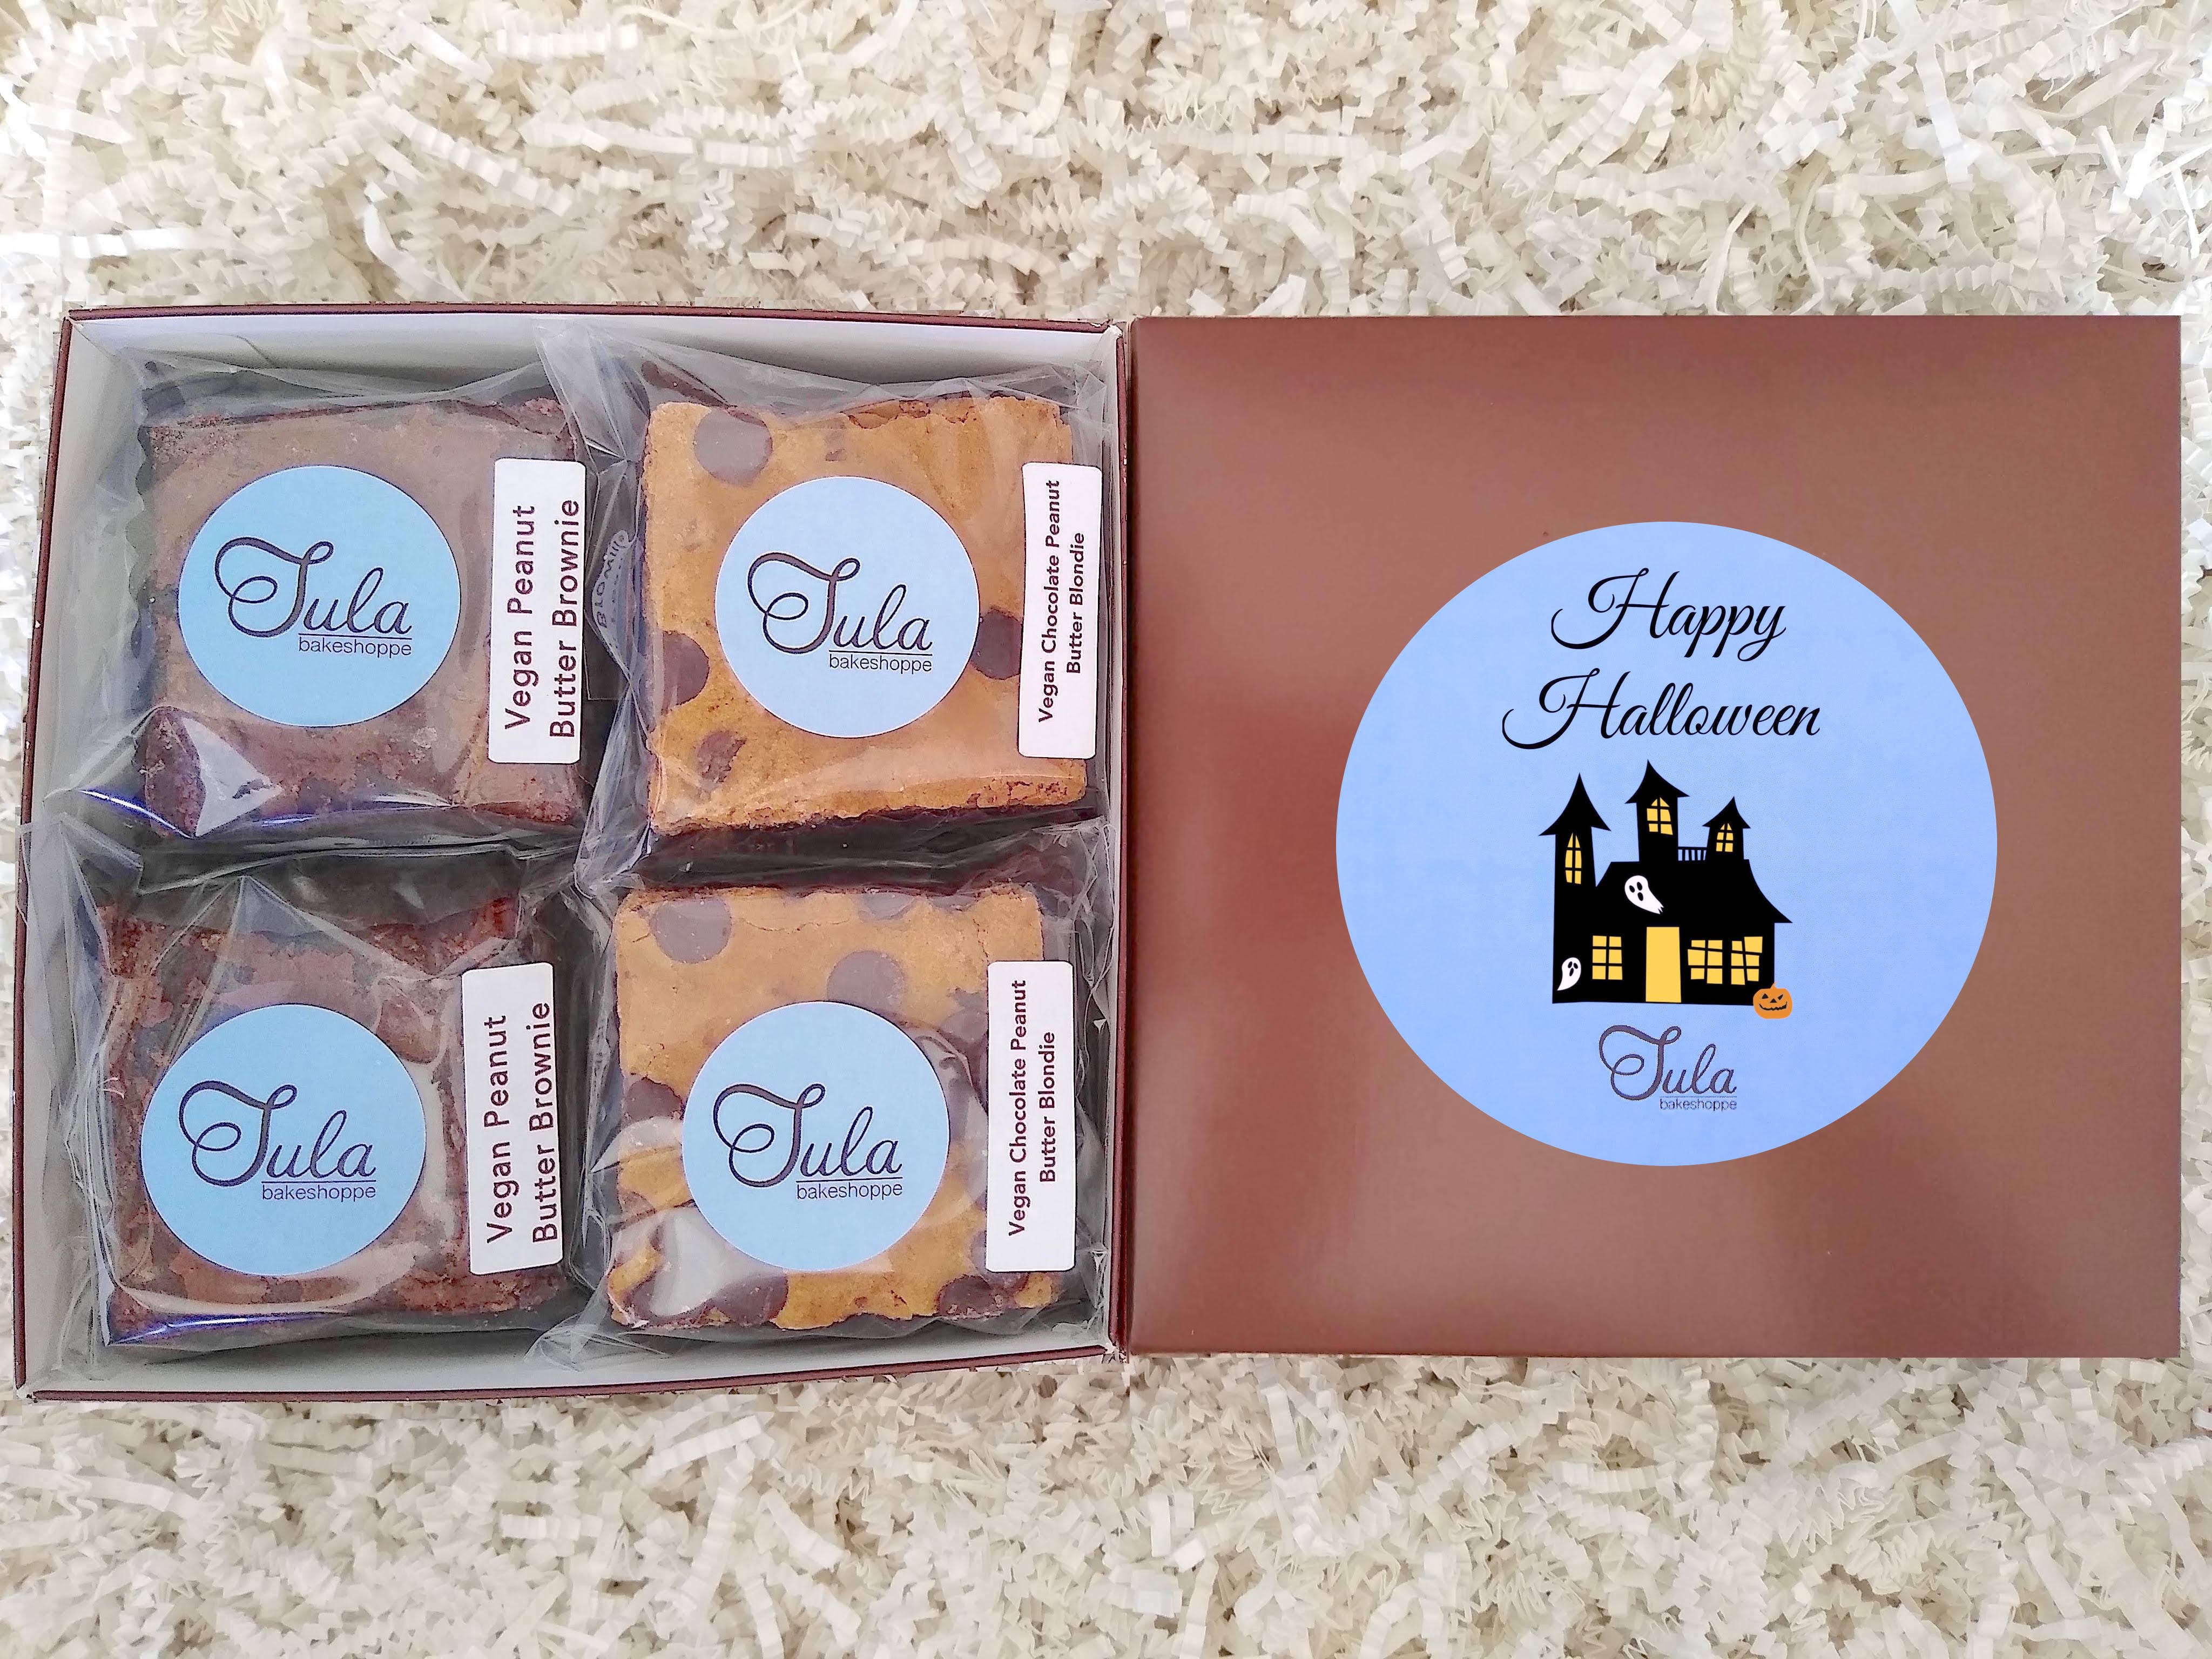 Vegan Halloween Peanut Butter Bar Lovers Baked Goods Food Gift Box, Non Dairy